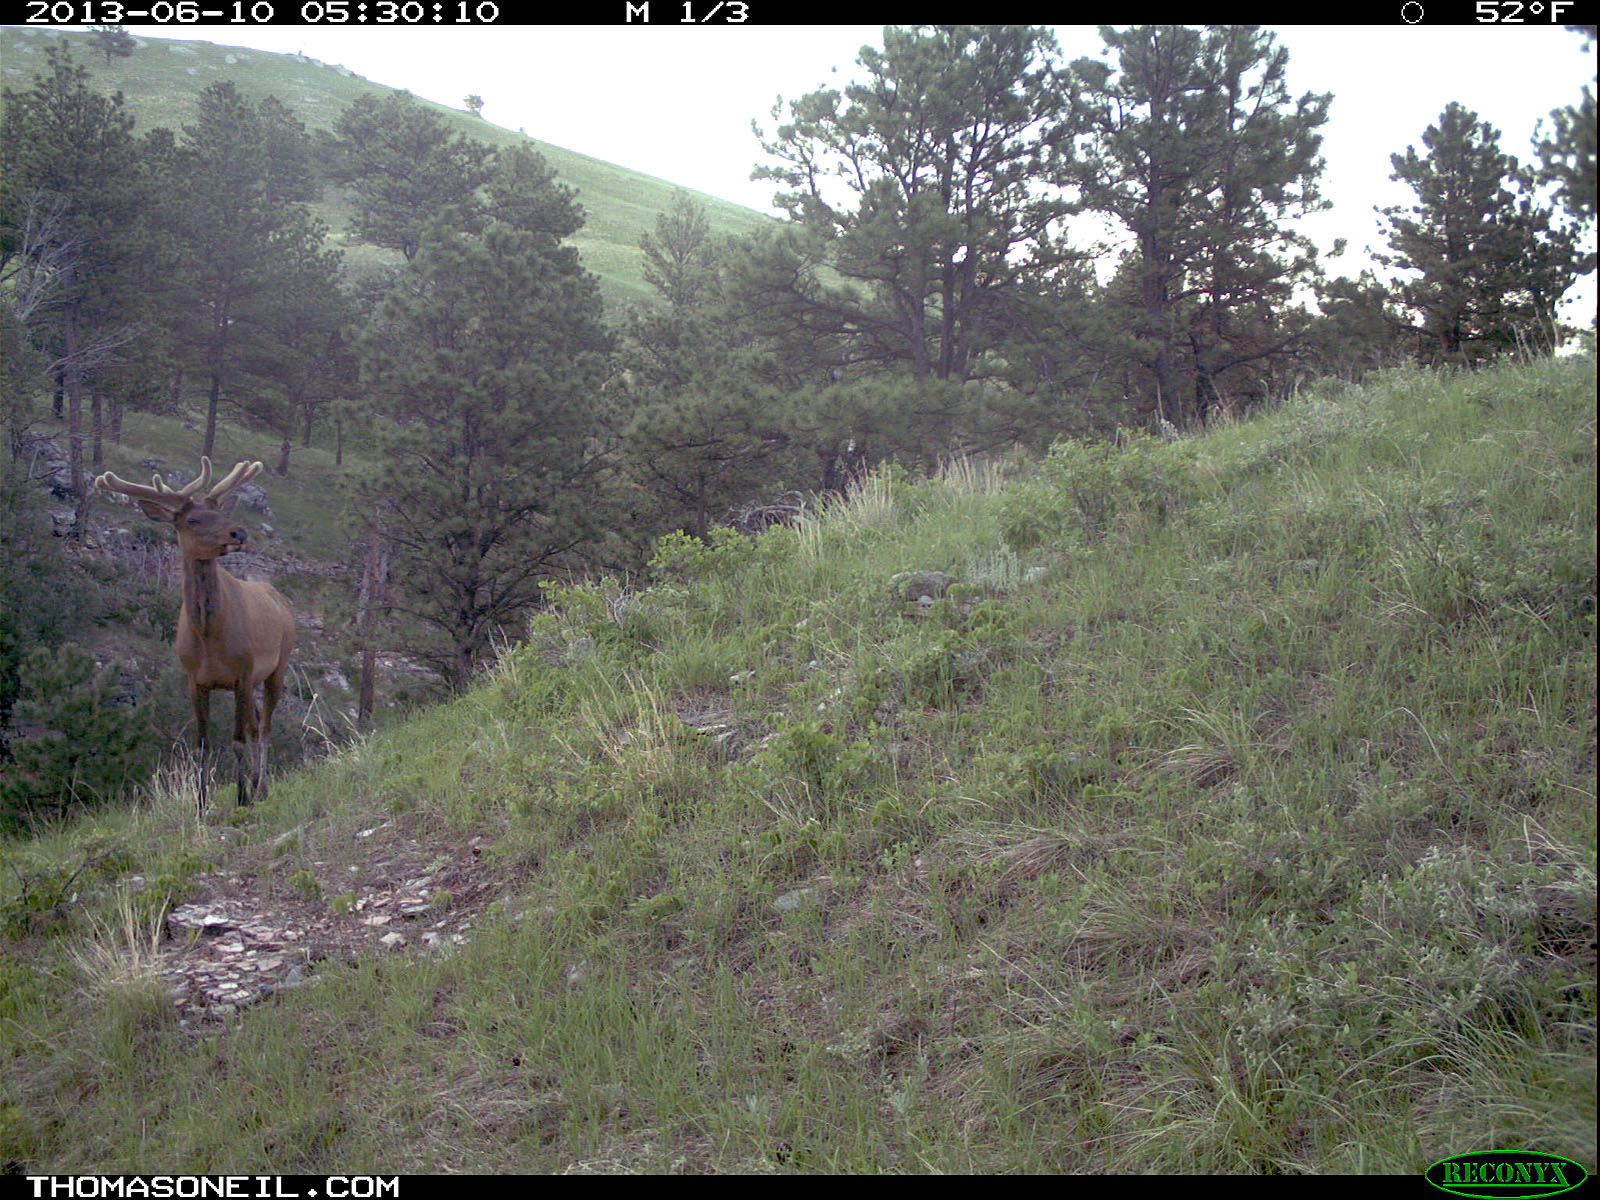 Elk on trail camera, Wind Cave National Park, South Dakota, June 10, 2013.  Click for next photo.